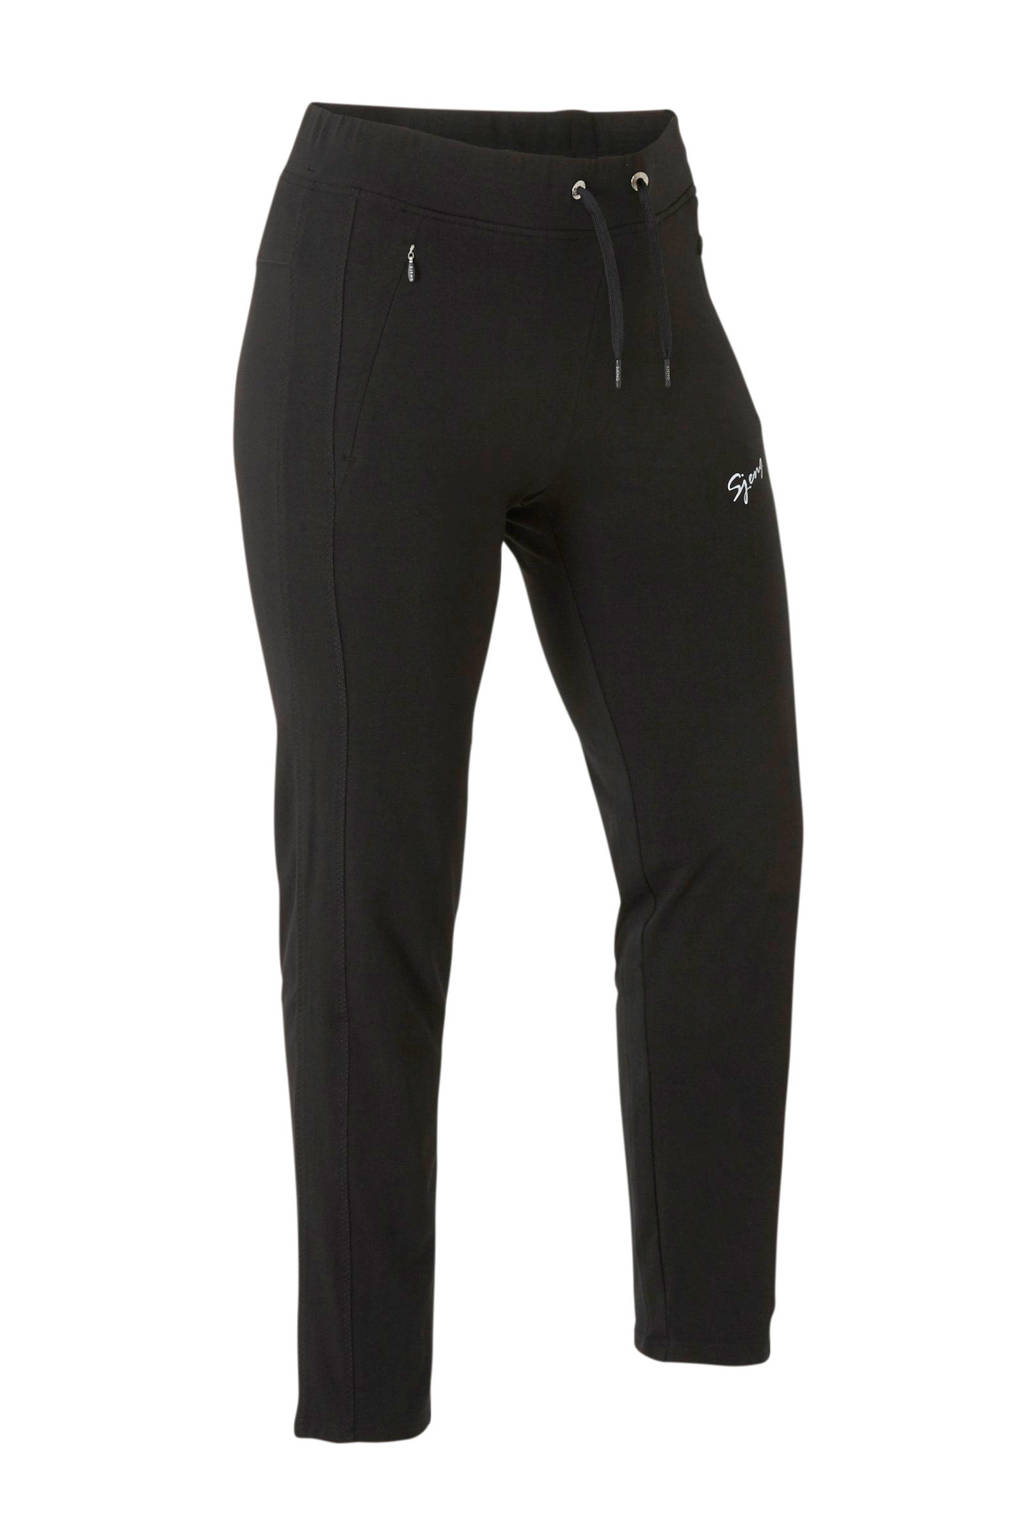 Sjeng Sports Plus joggingbroek zwart, Zwart